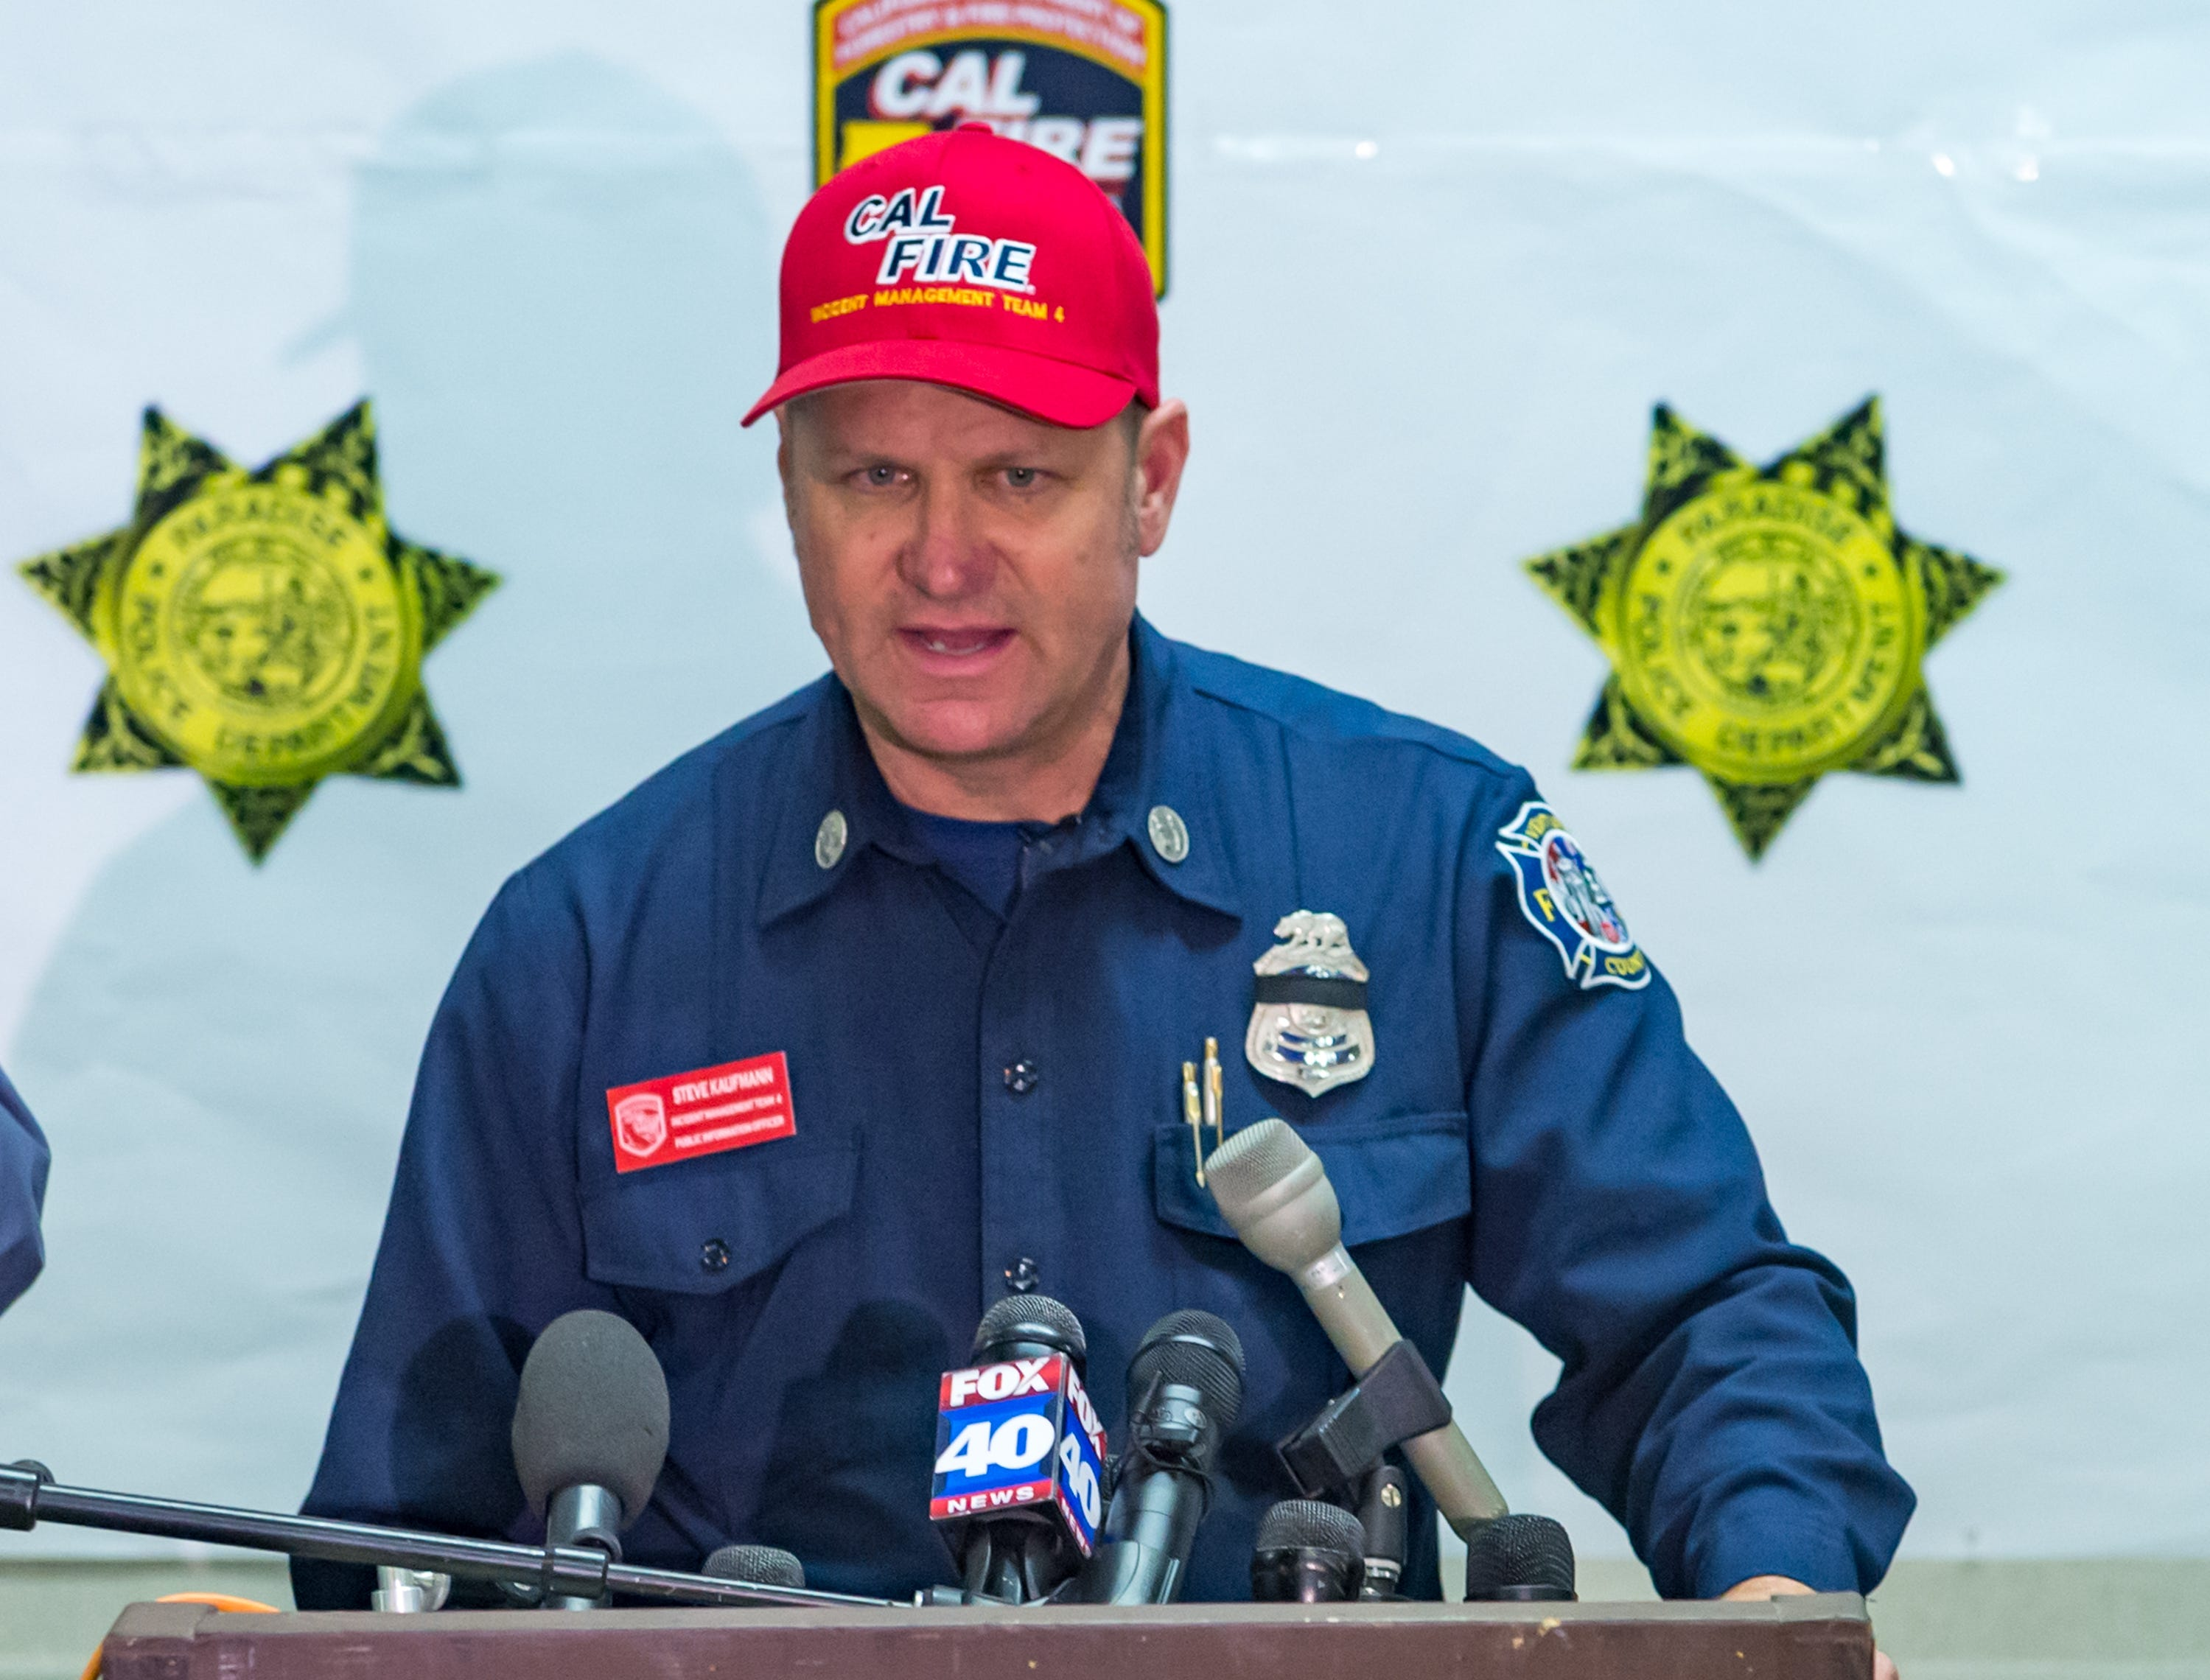 Steve Kaufman- Public Information Officer for Cal Fire speaking at Press Conference. Sunday, Nov. 11, 2018.